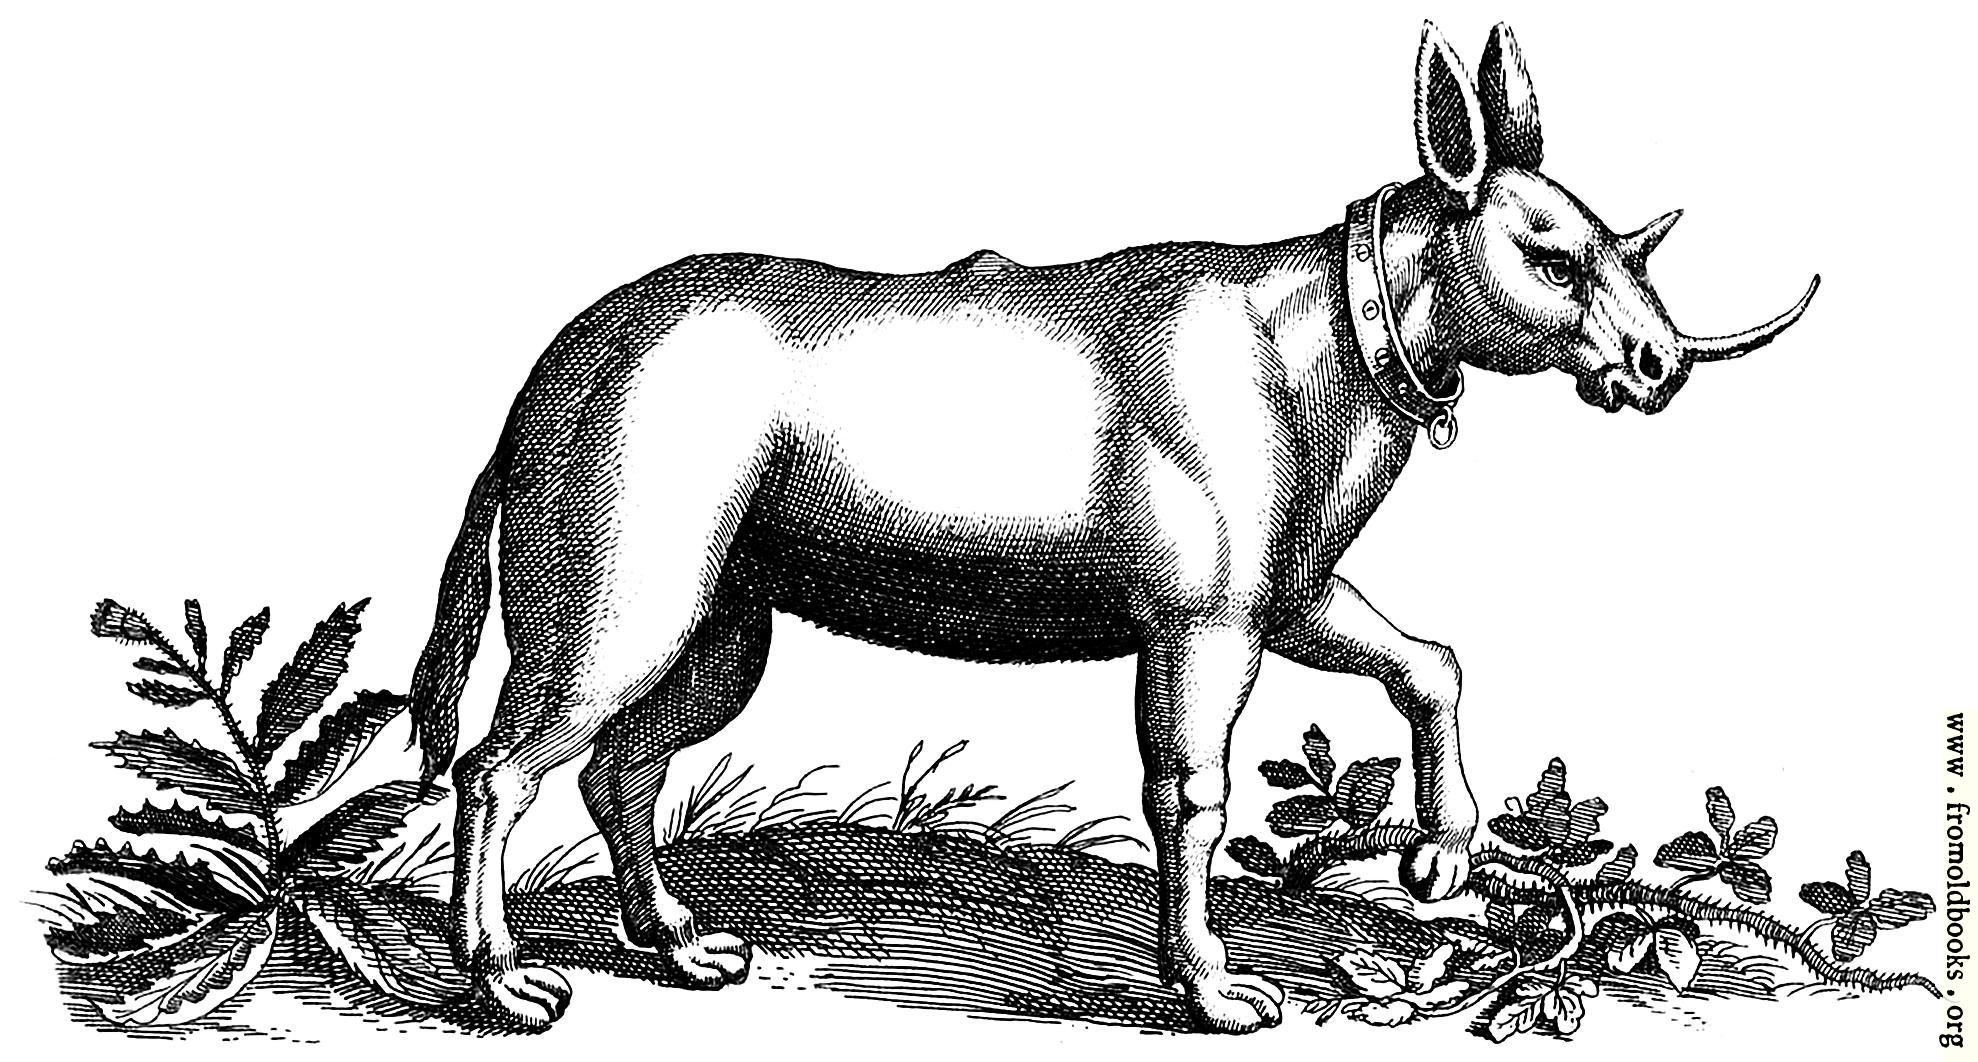 http://www.fromoldbooks.org/Jonstonus-FourFootedBeasts/pages/0153-a-monoceros-engraving/0153-a-monoceros-engraving-q85-1978x1062.jpg